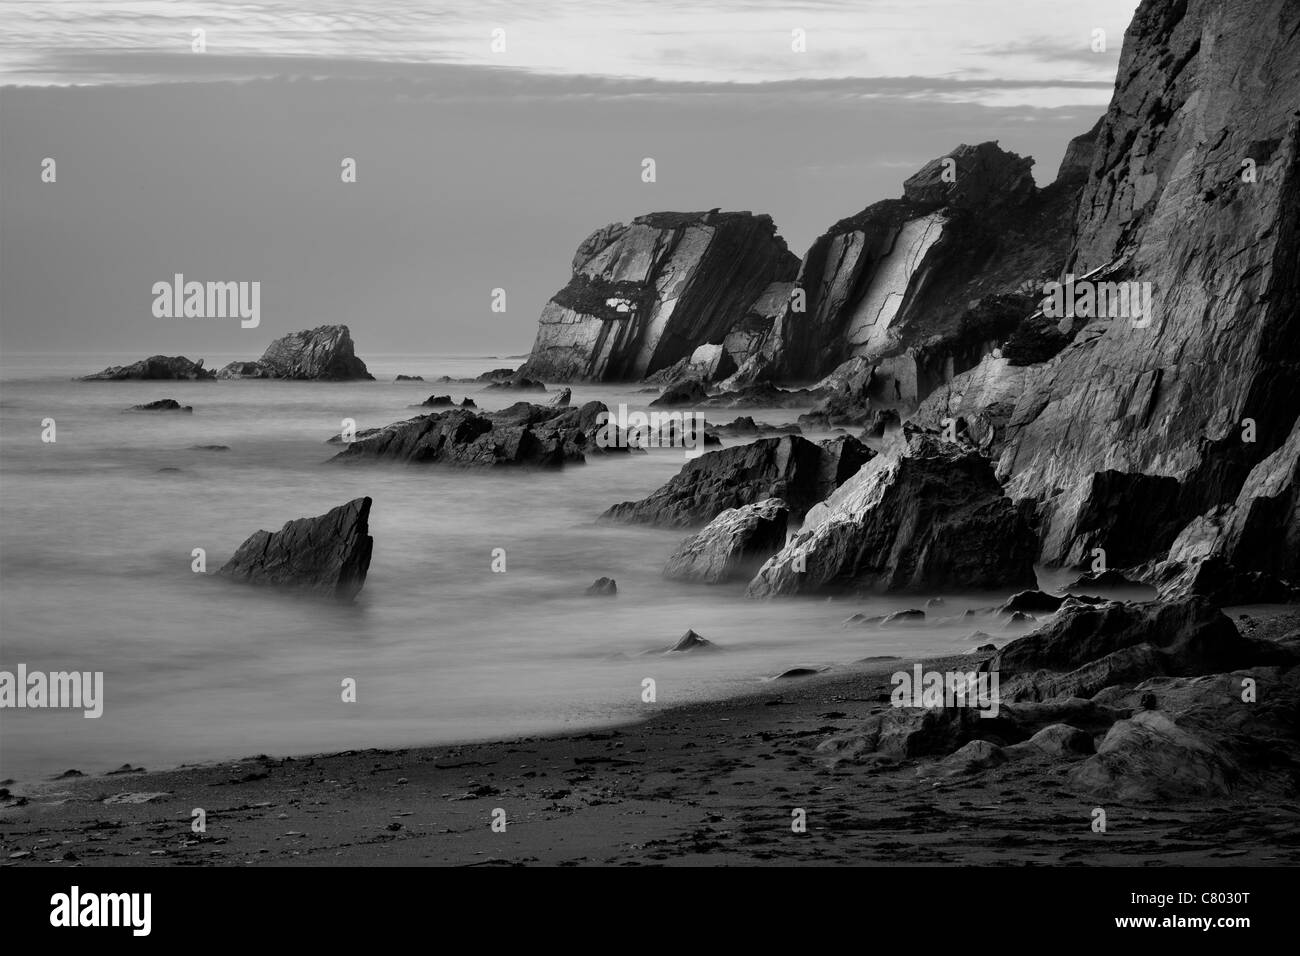 Rocky coast at Ayrmer Cove in the South Hams district of Devon - Stock Image